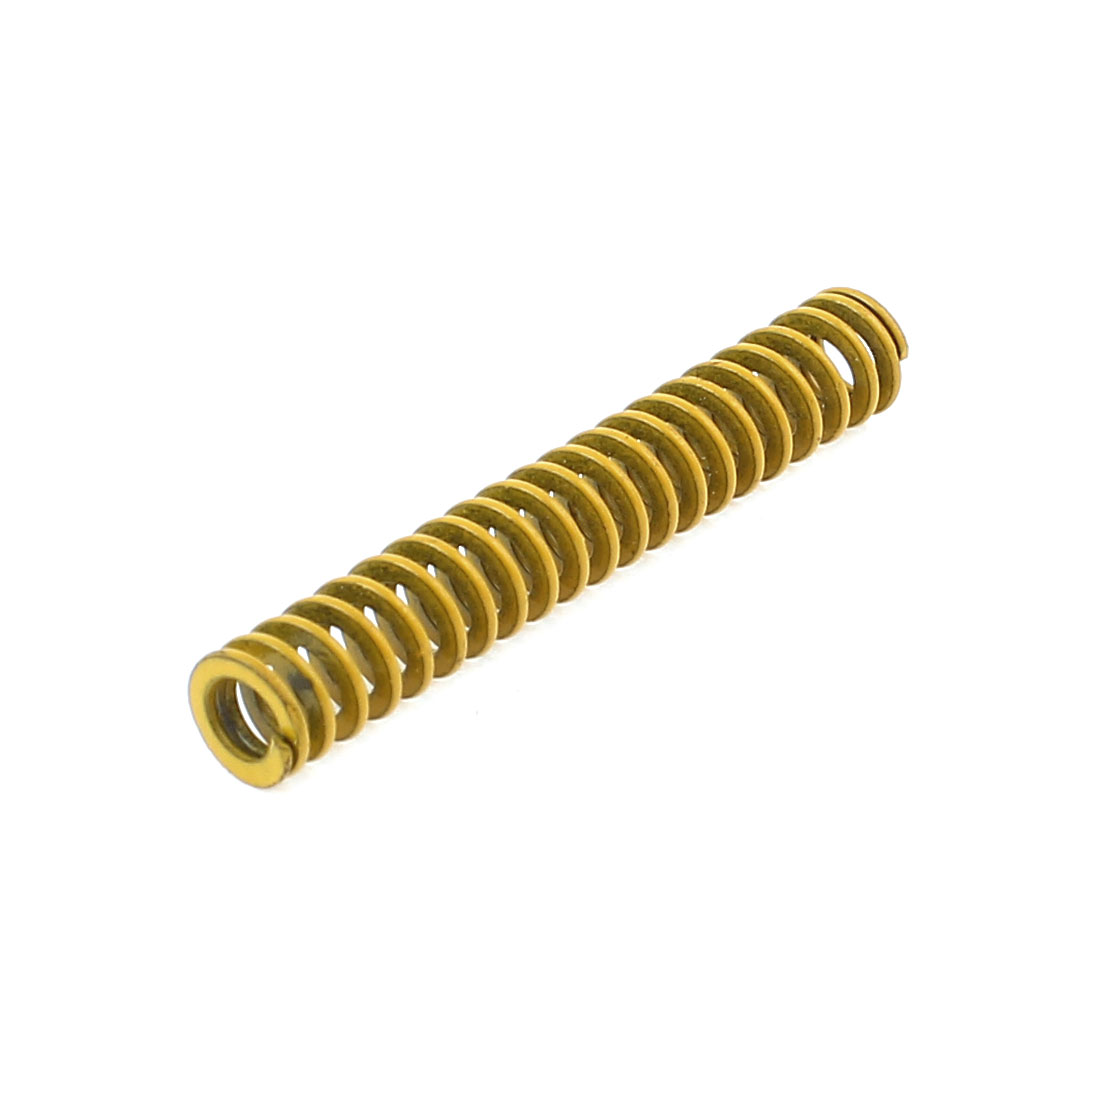 6mm x 3mm x 35mm Chromium Alloy Steel Compression Die Spring Yellow